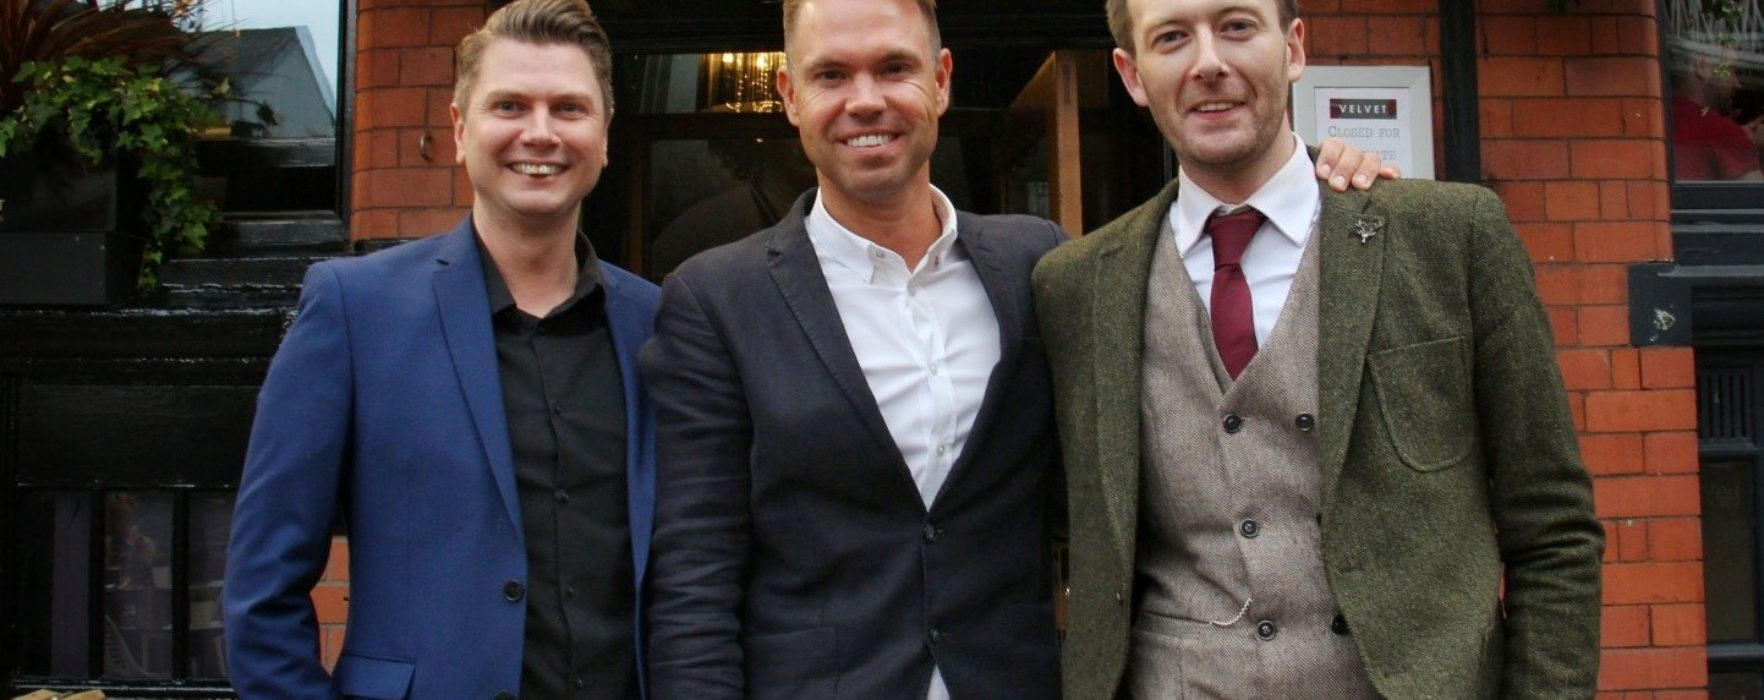 Manchester's finest flock to Canal Street for Launch of Mr White's English Chophouse